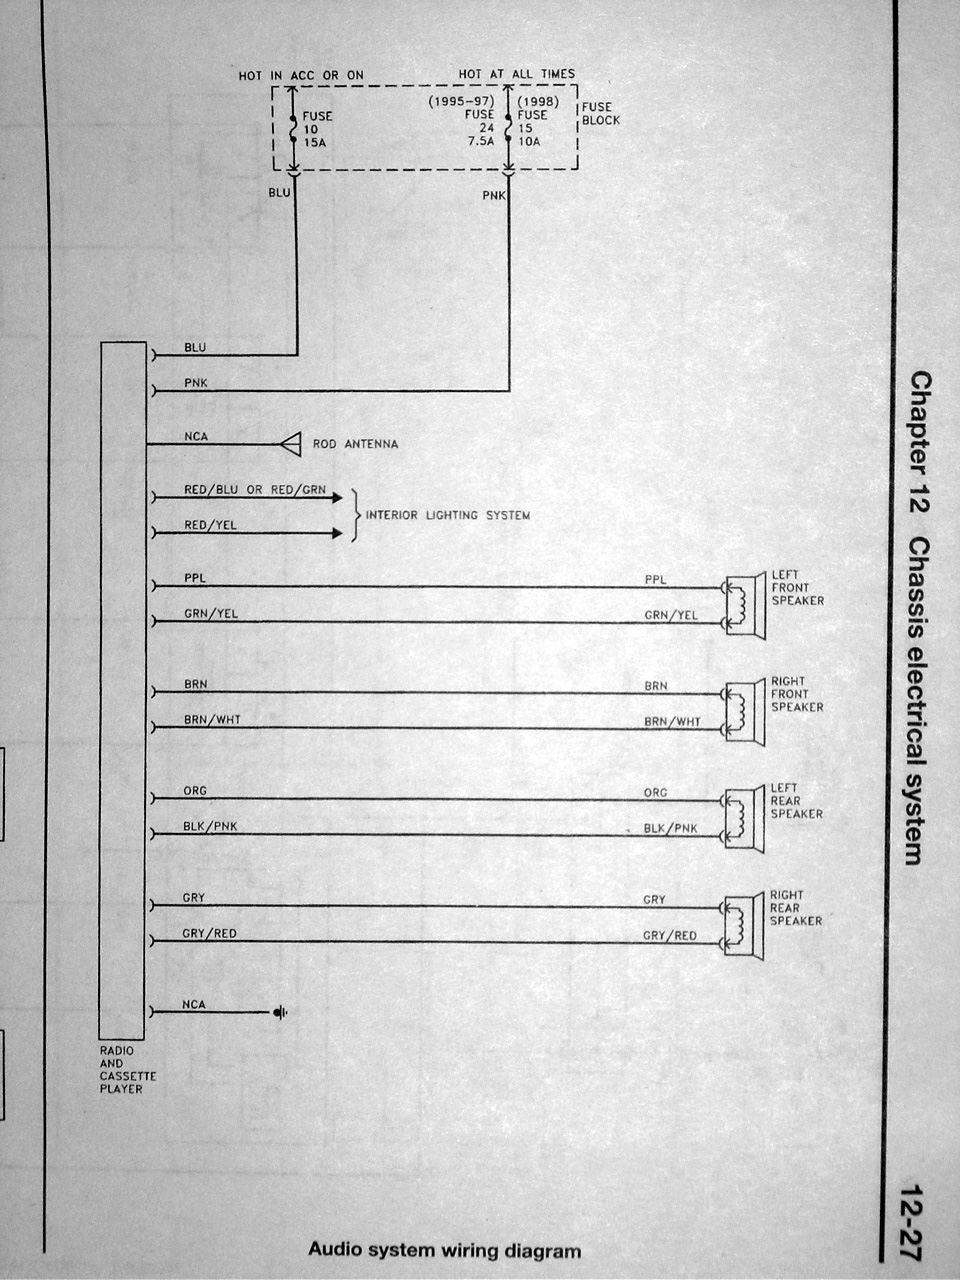 medium resolution of 2003 nissan sentra radio wiring diagram wiring library rh 48 bloxhuette de 1998 nissan sentra wiring